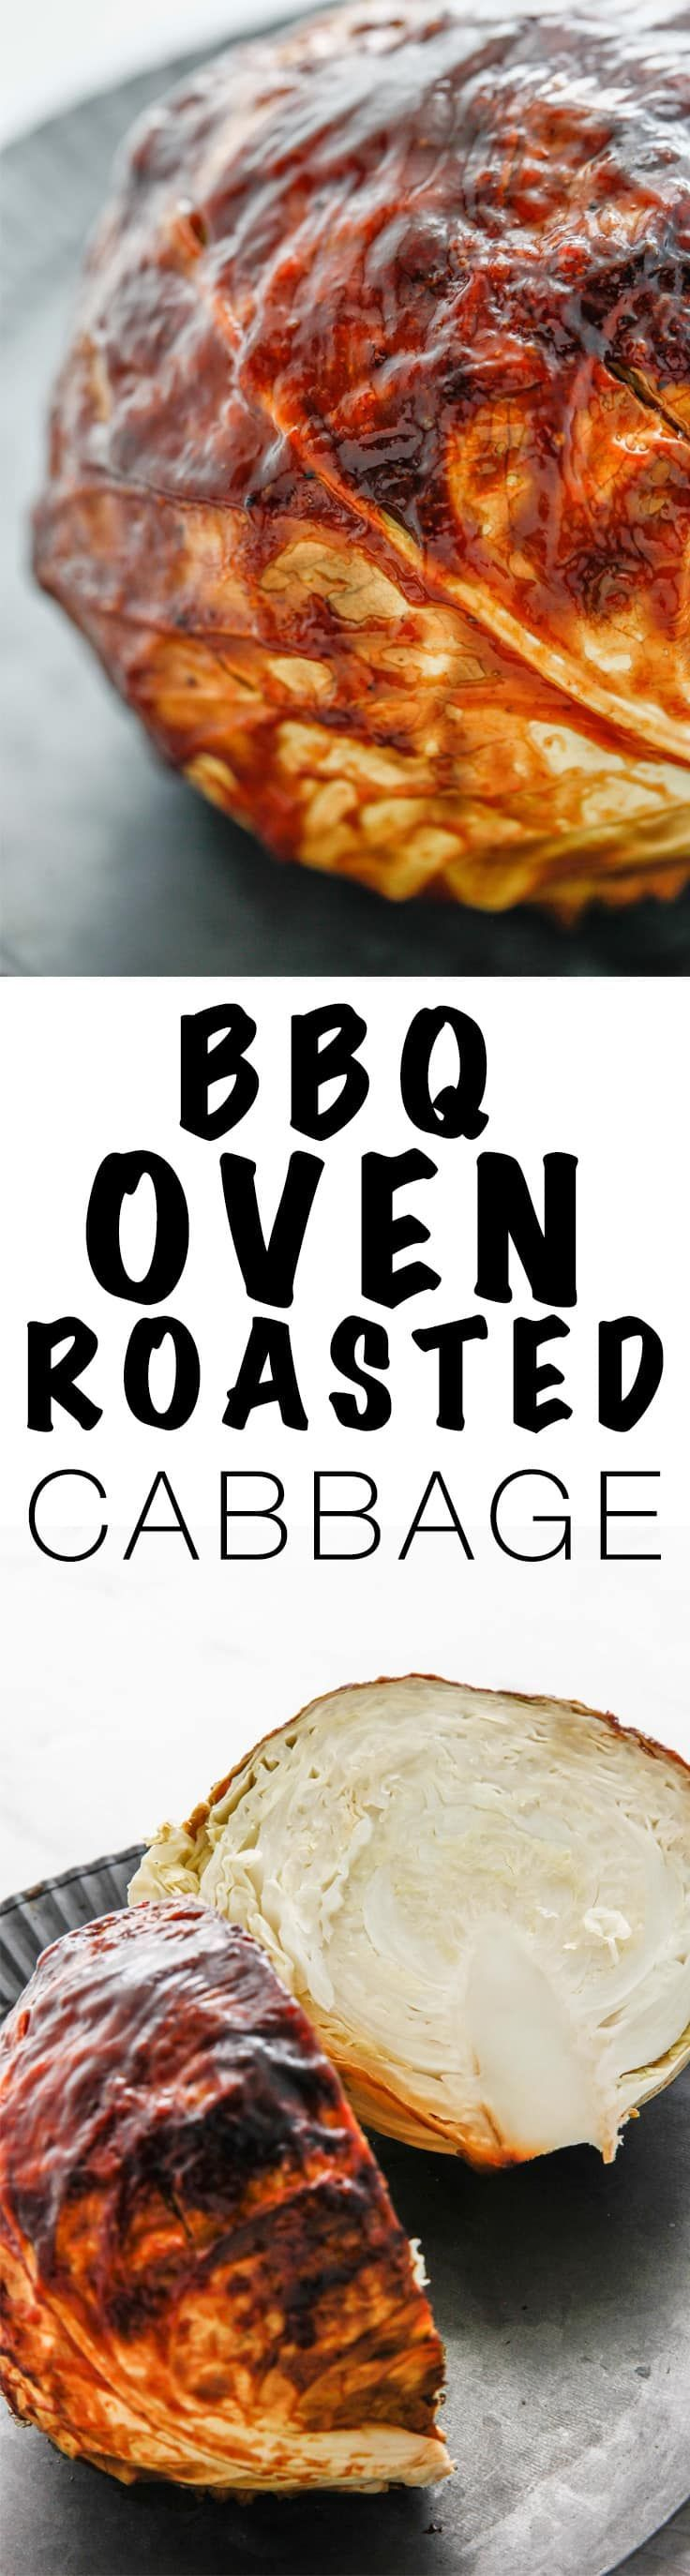 Make something different at your barbecue this summer with this BBQ Oven Roasted Cabbage recipe that is a new take on a boring vegetable! via @thebrooklyncook